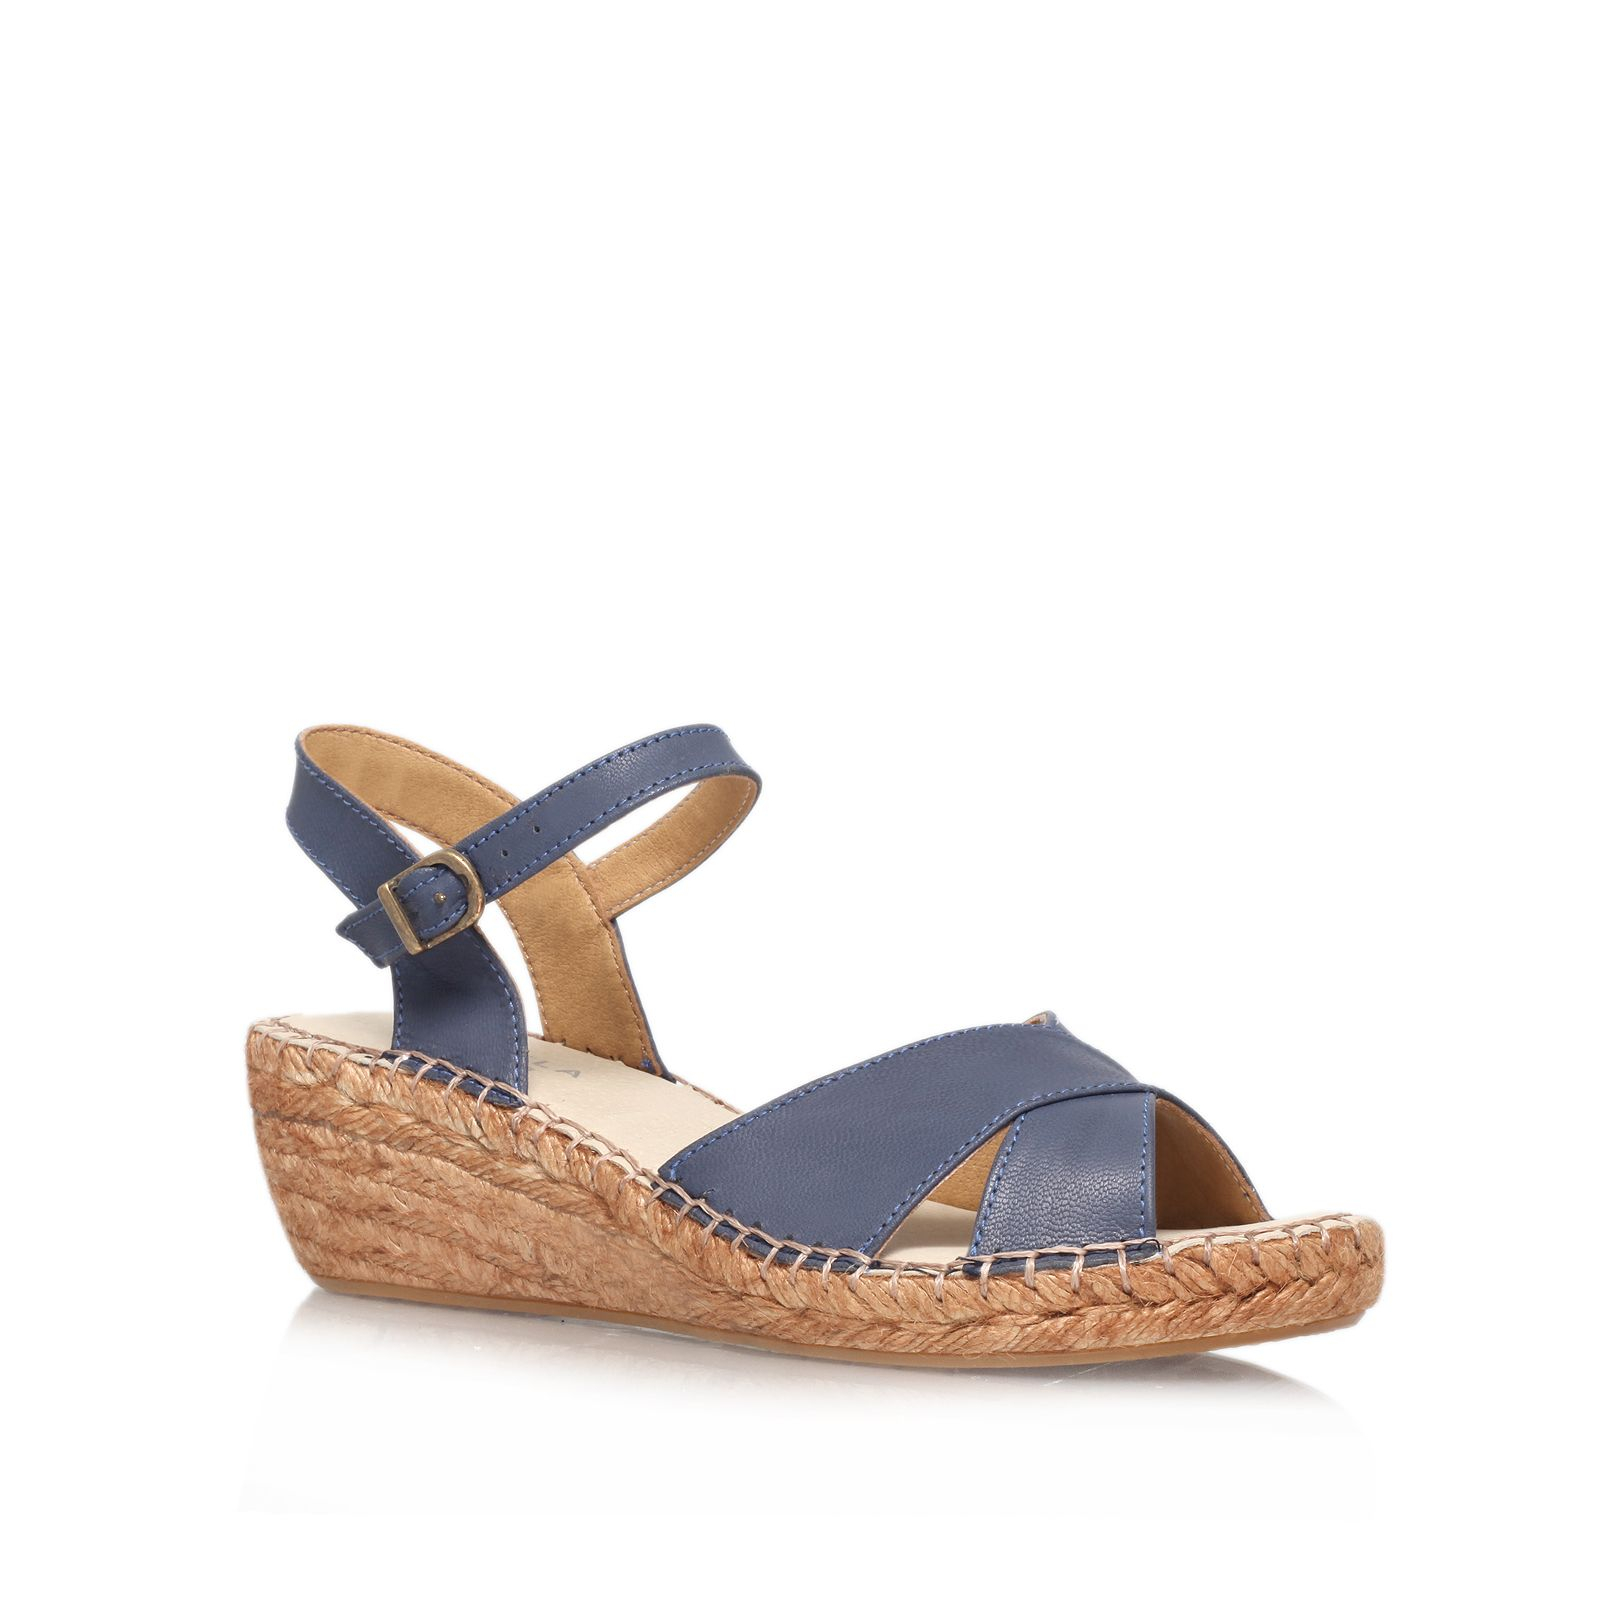 carvela kurt geiger kandy mid heel wedge sandals in blue